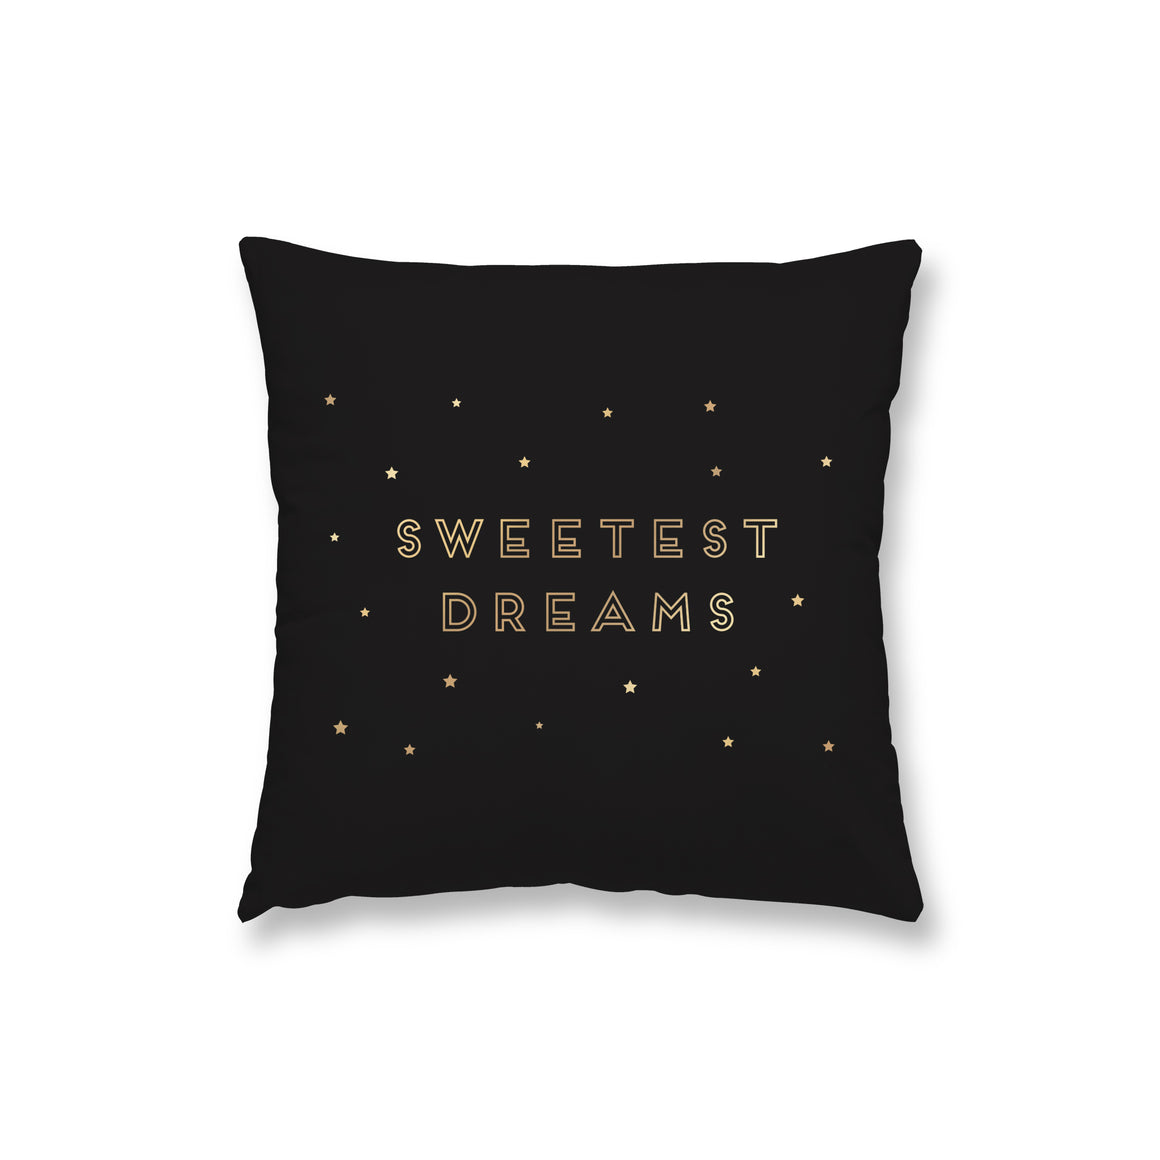 Sweetest Dreams Black Gold Foil Pillow